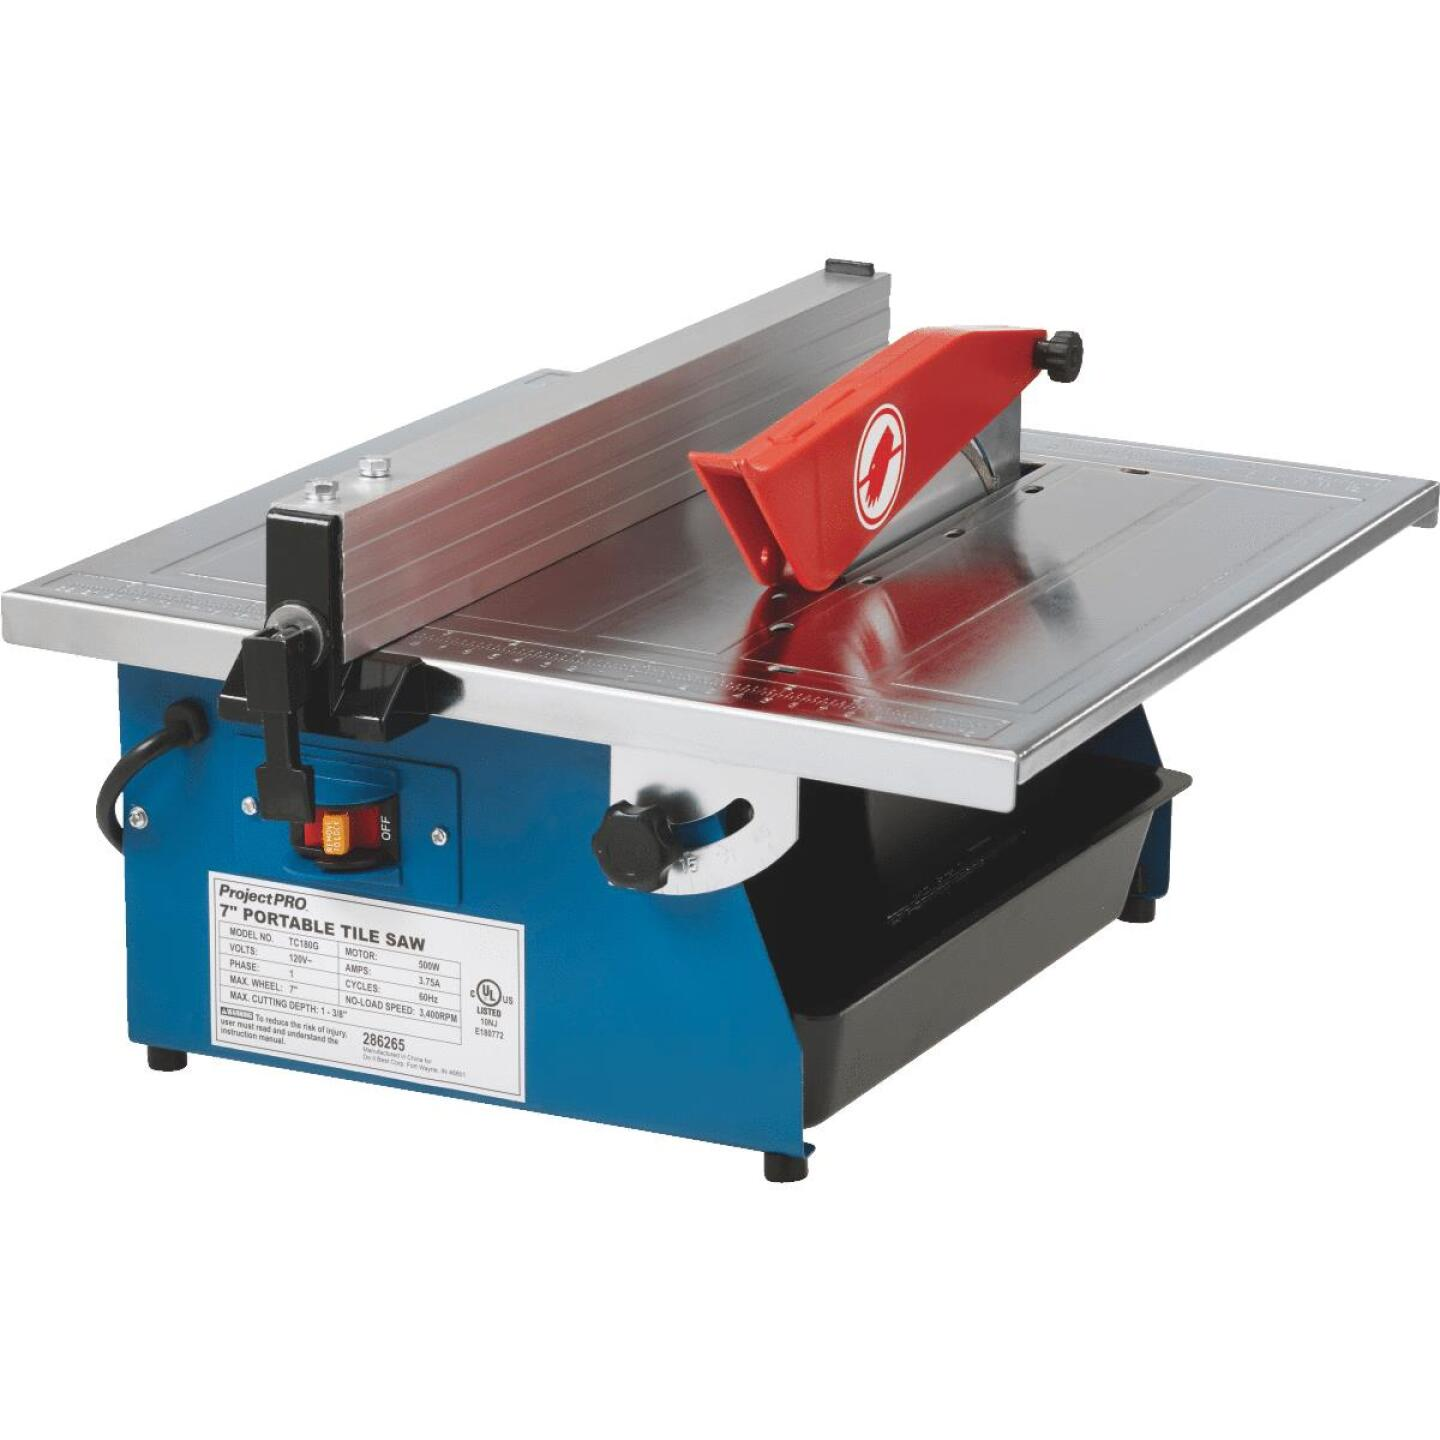 Project Pro 7 In. Portable Tile Saw Image 12